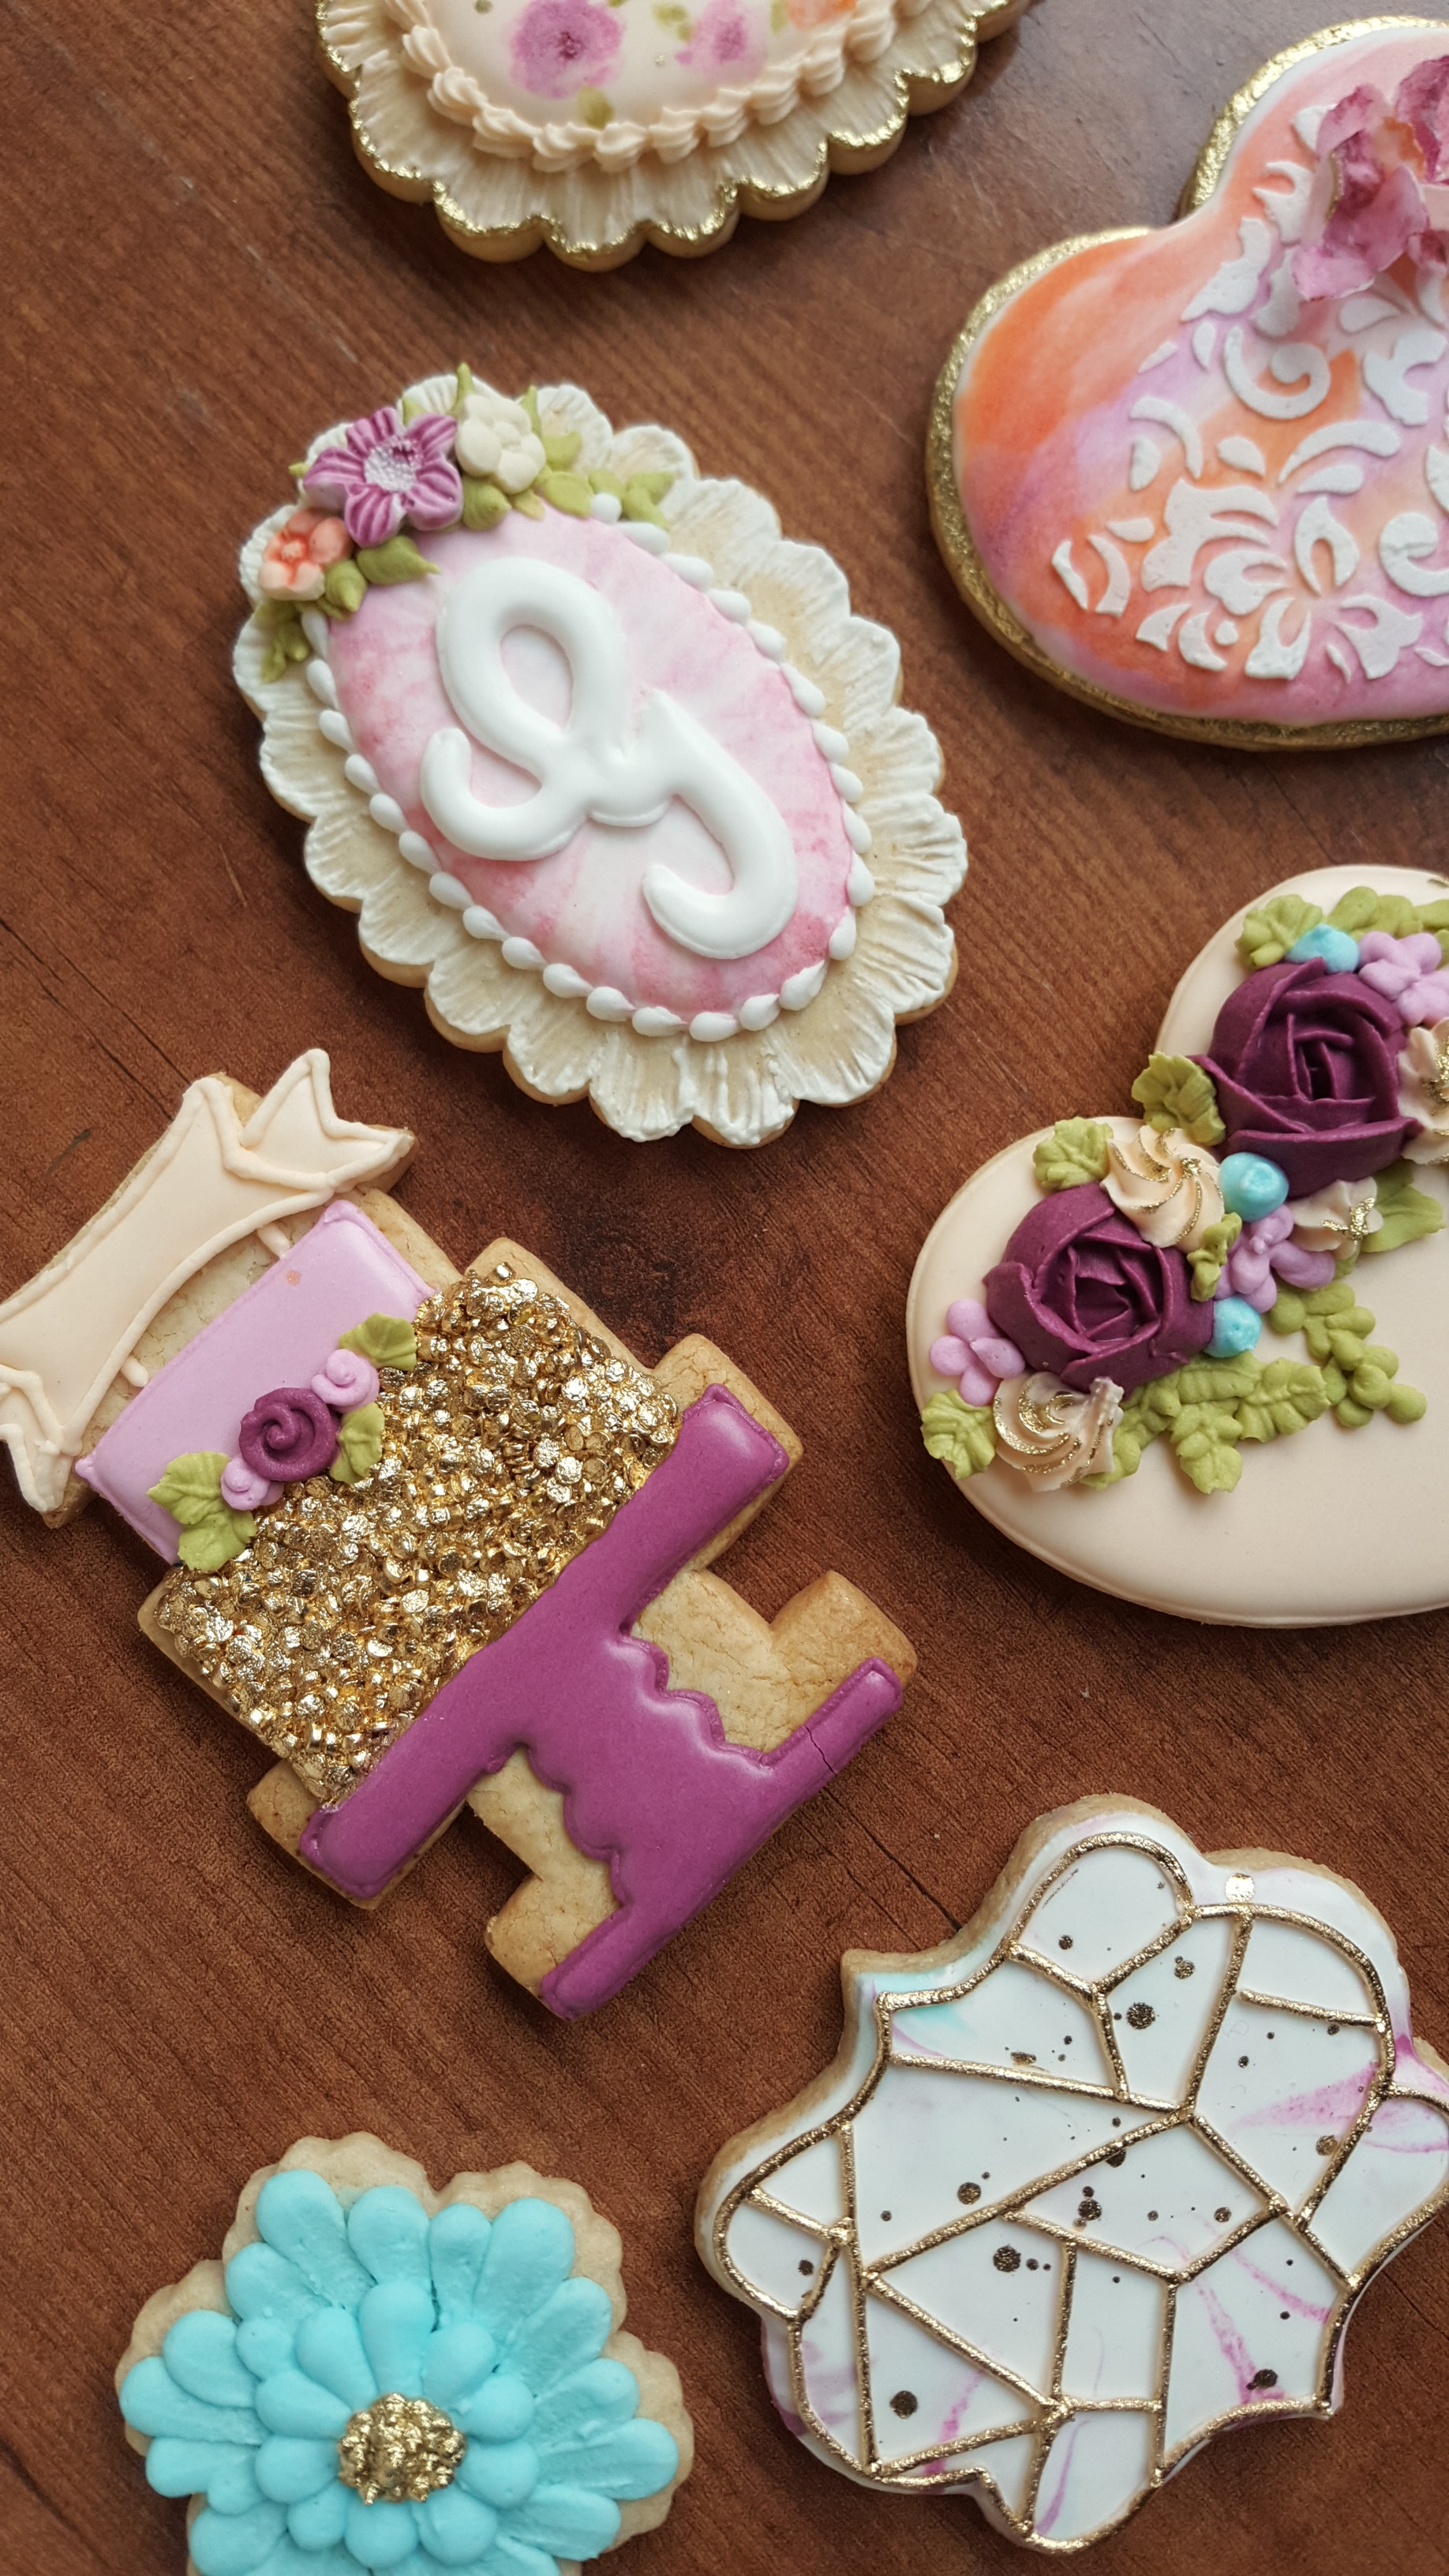 Curso galletas decoradas online